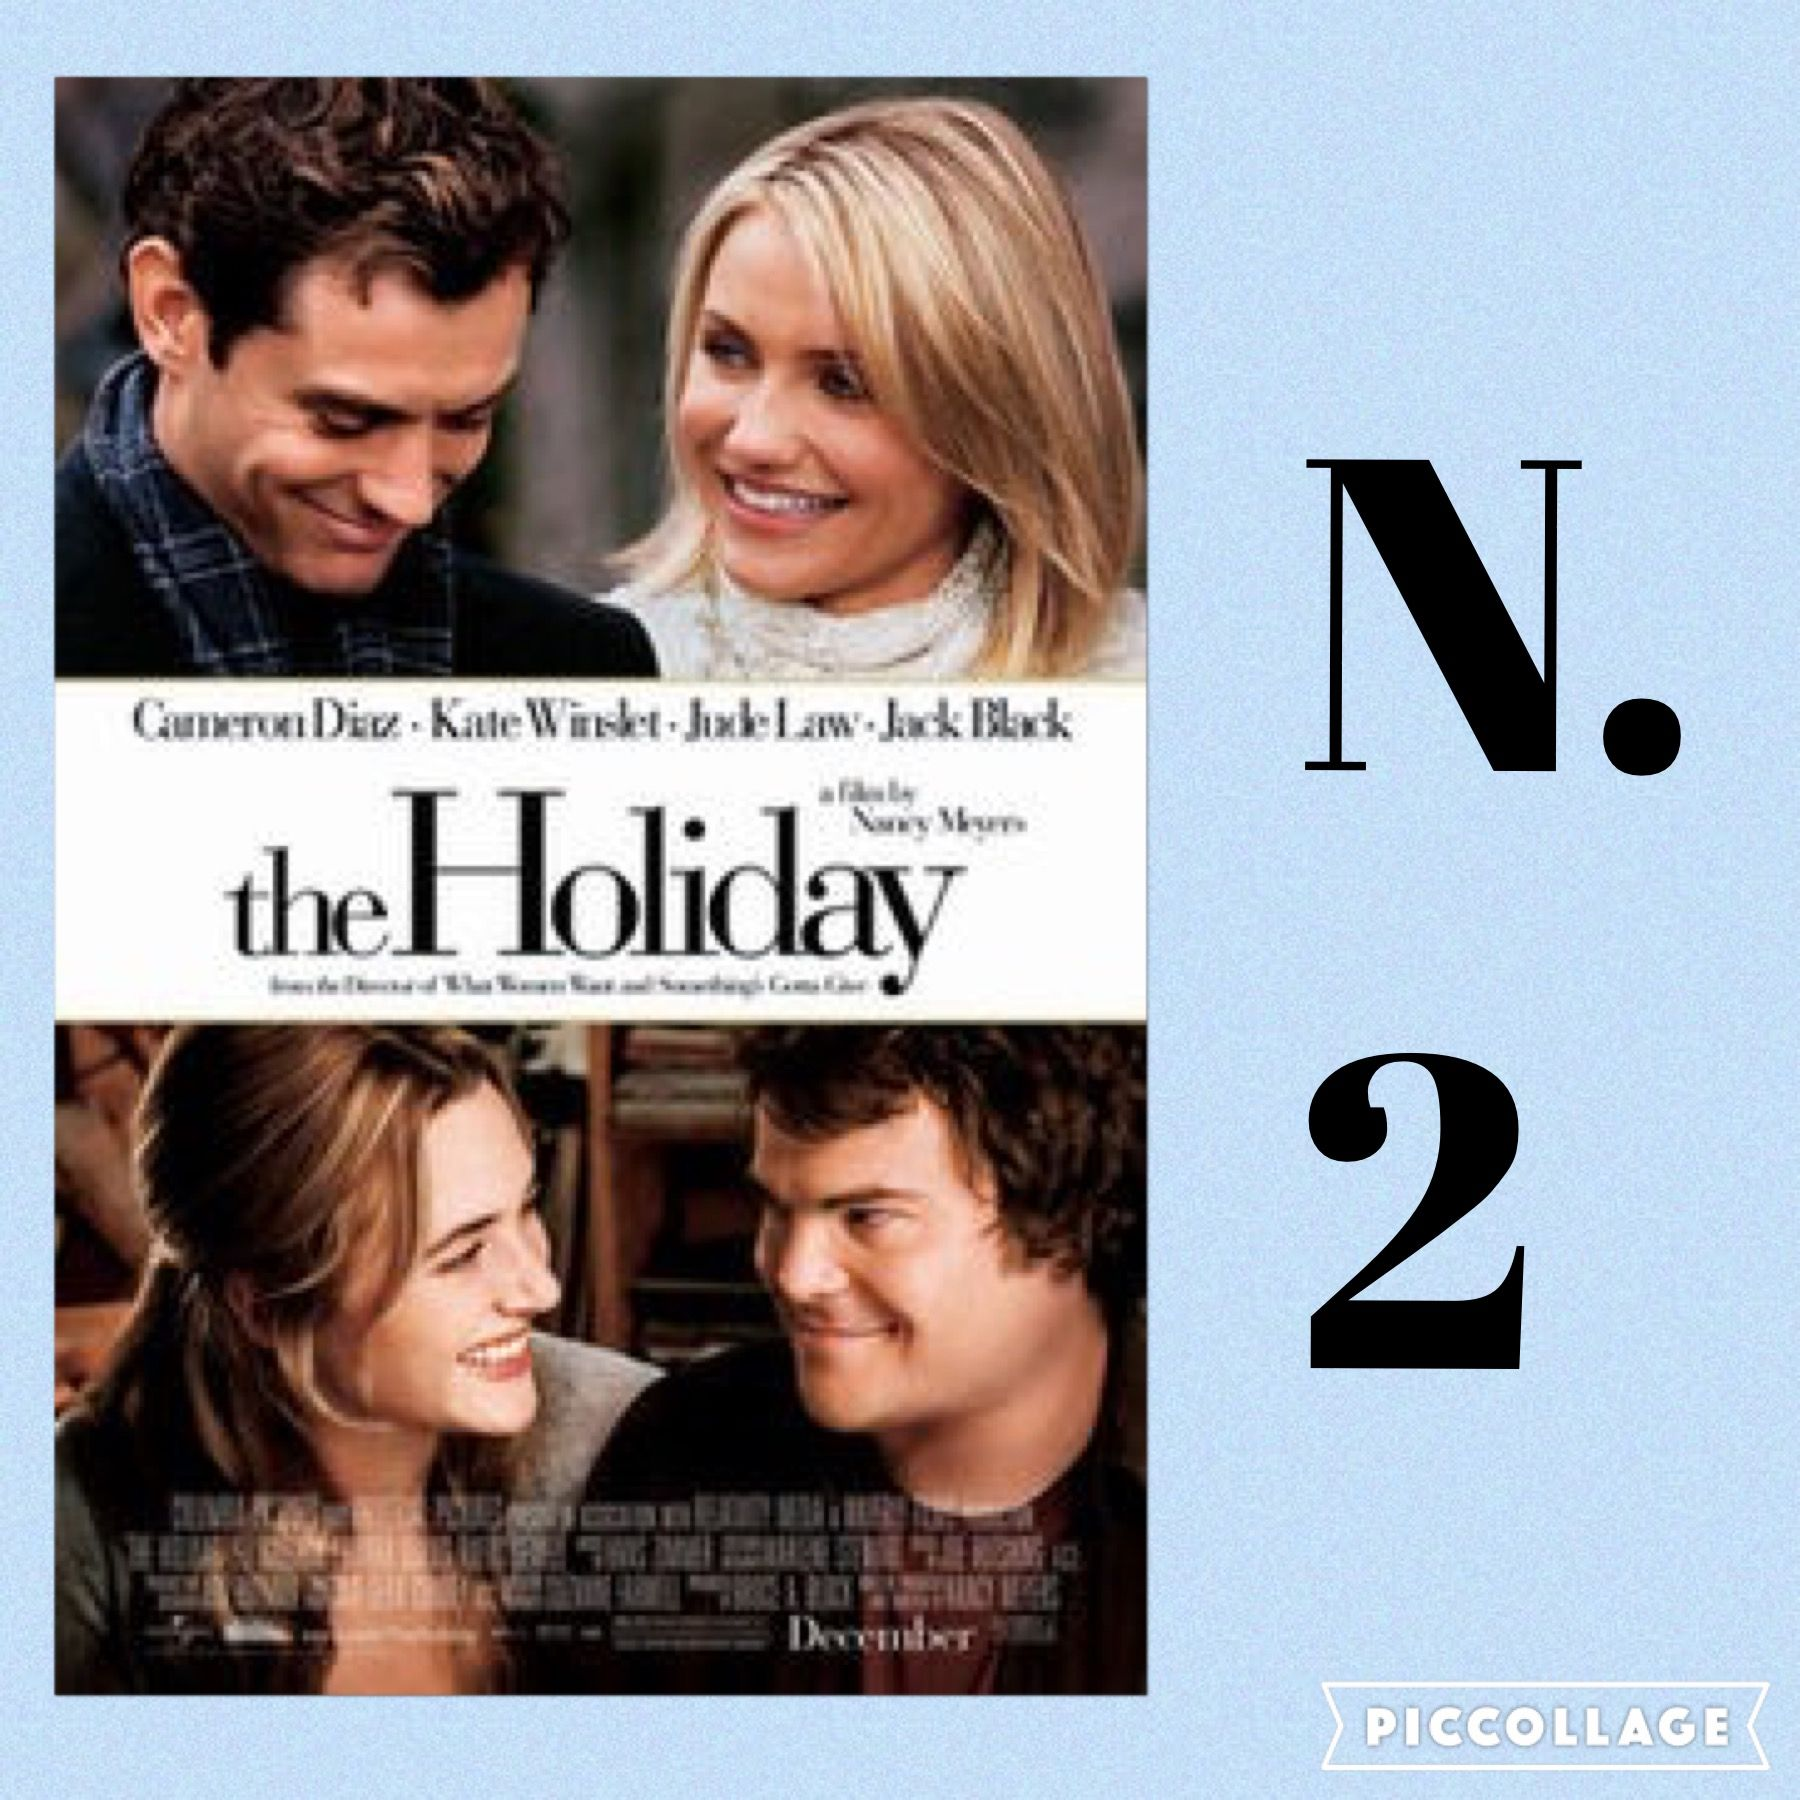 The Holiday (2006). Two women, one (Cameron Diaz) from